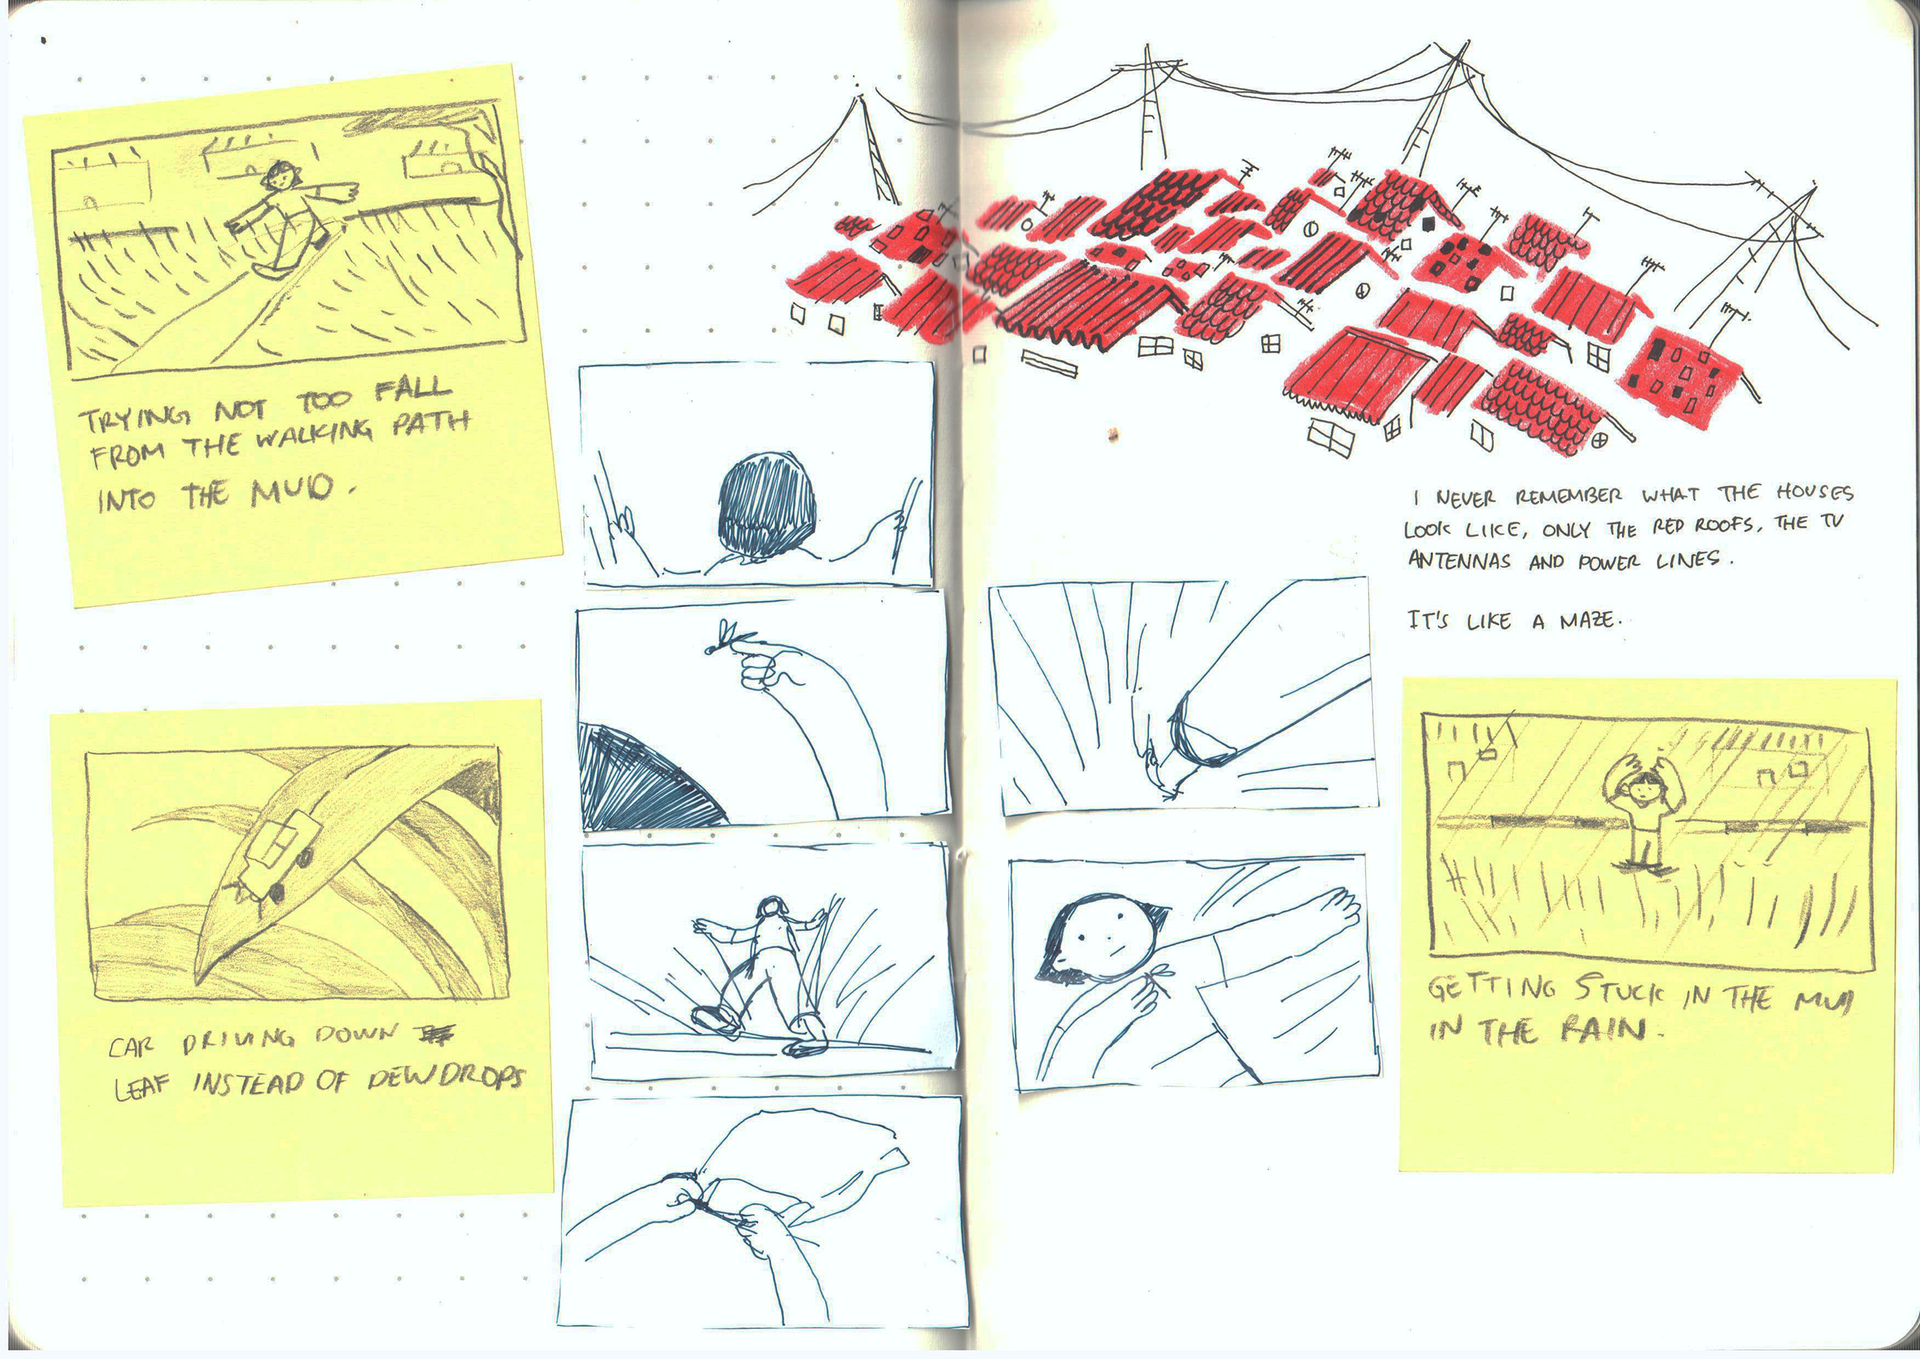 sketchbook - a spread page of storyboard and design ideas